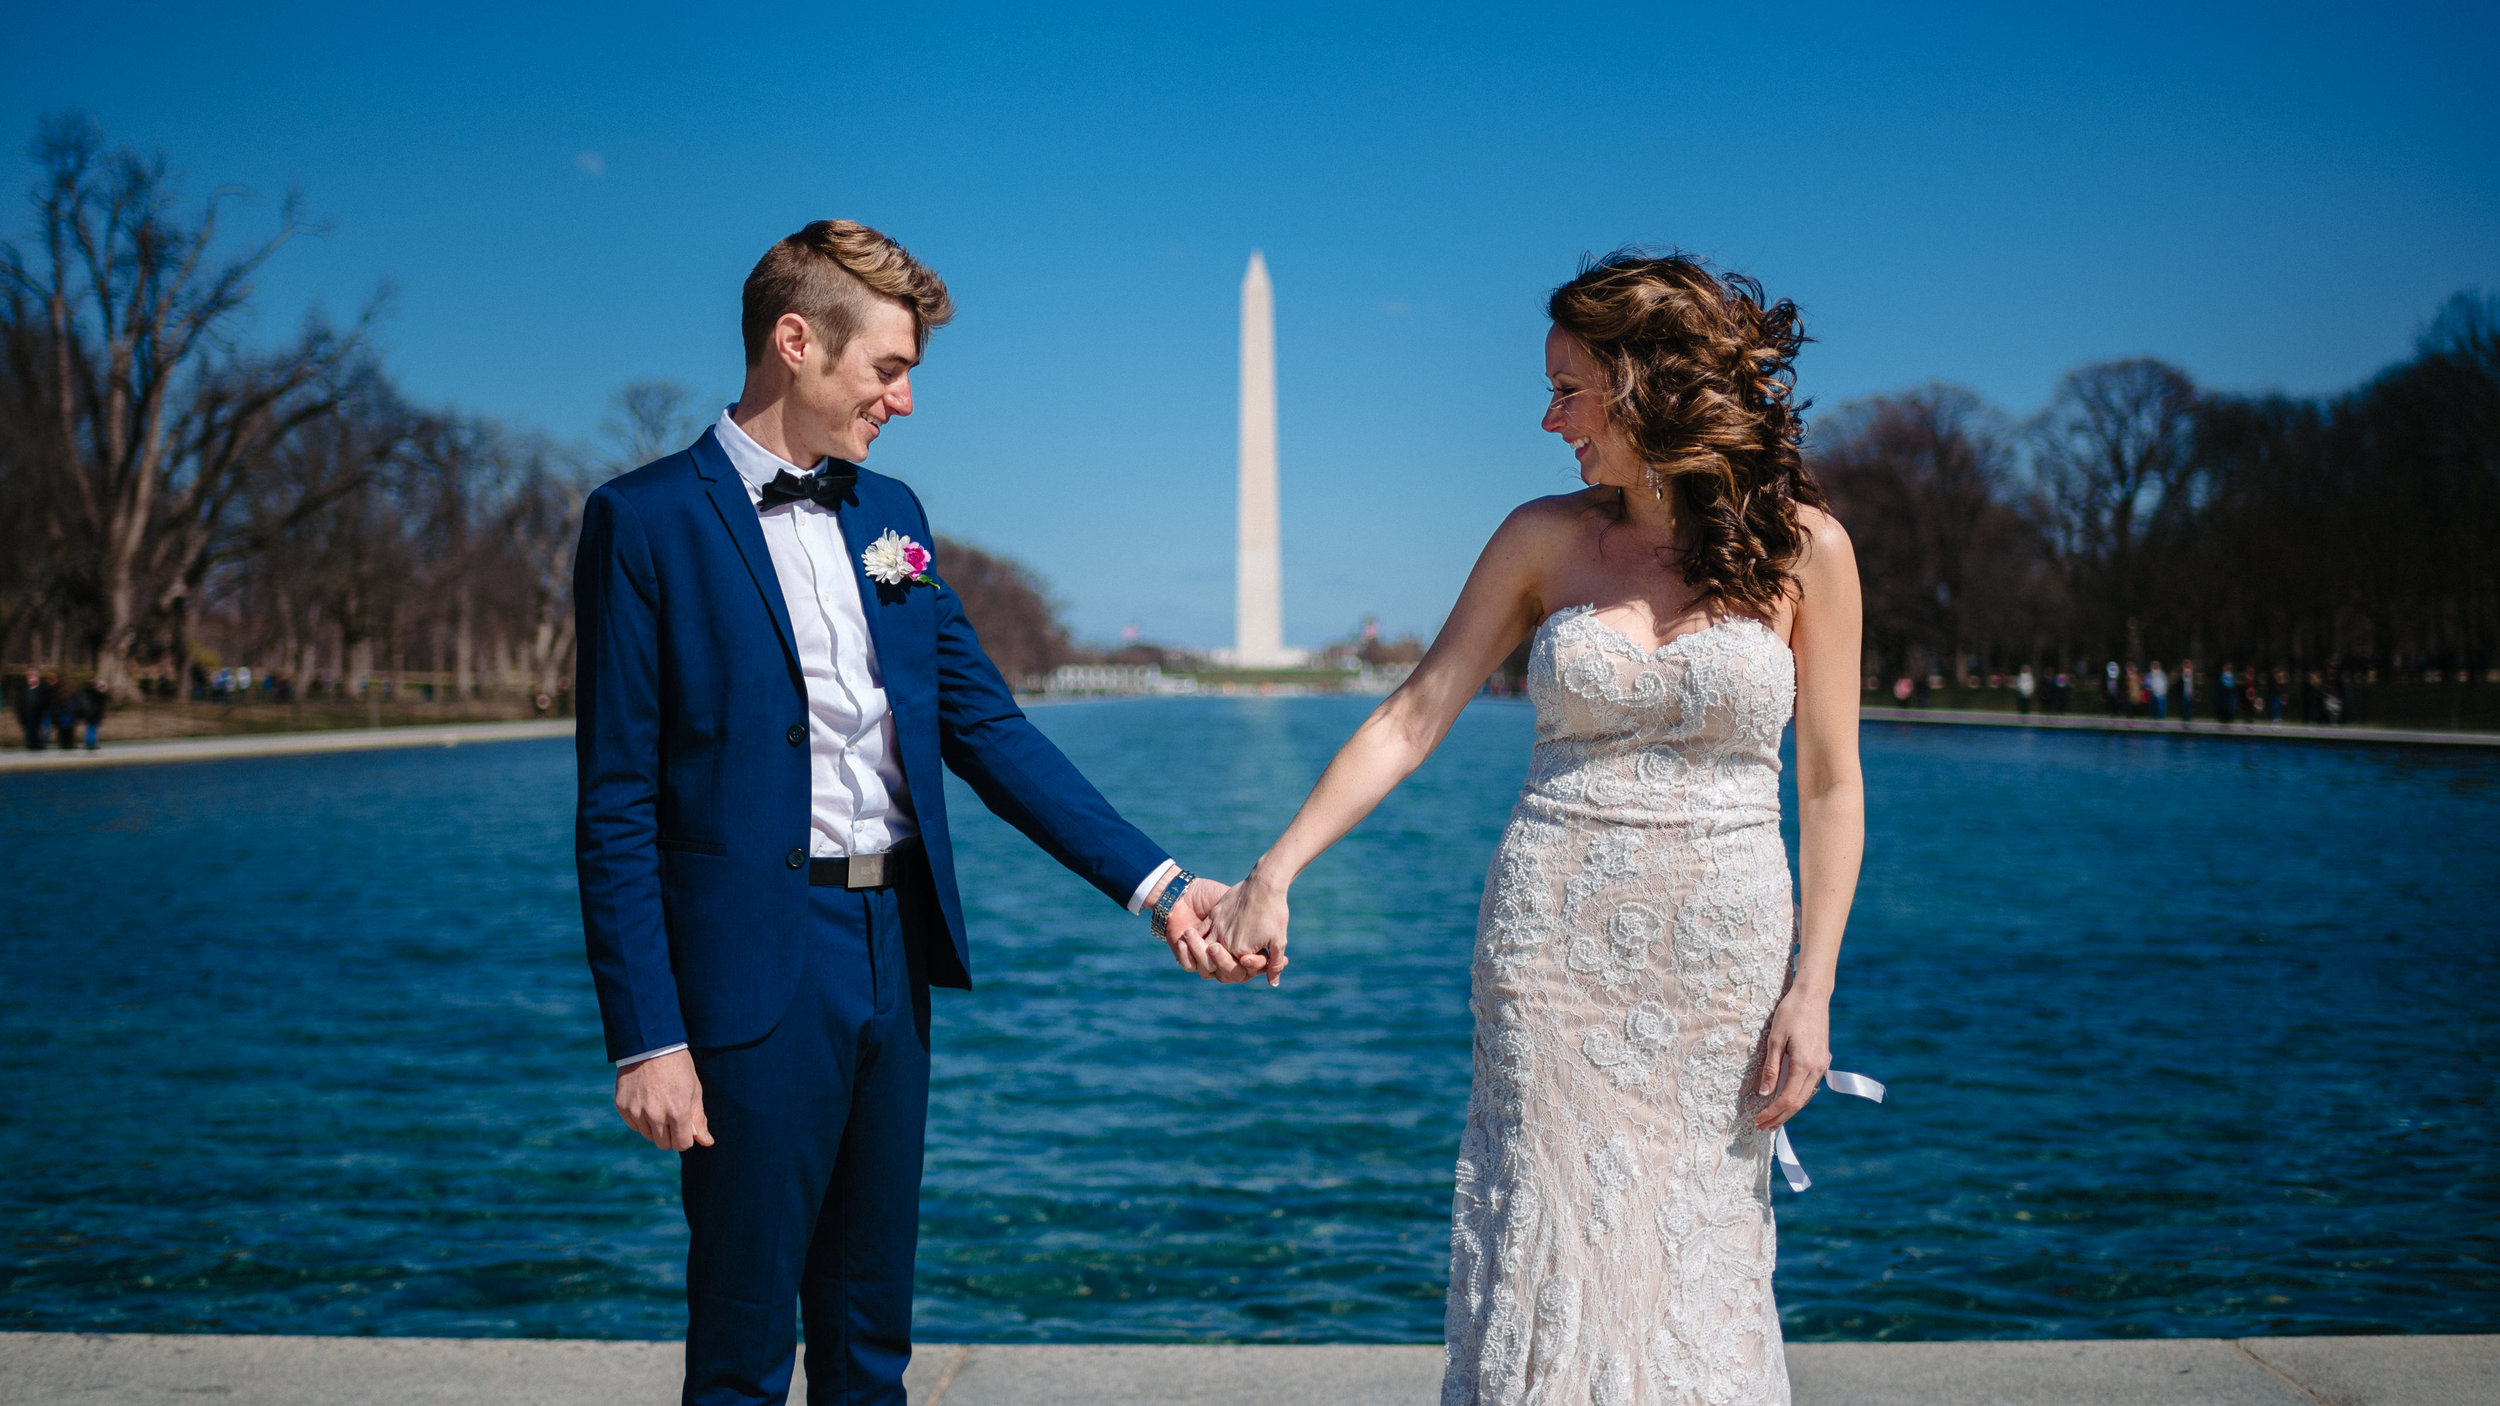 Washington DC Elopement at the Monuments